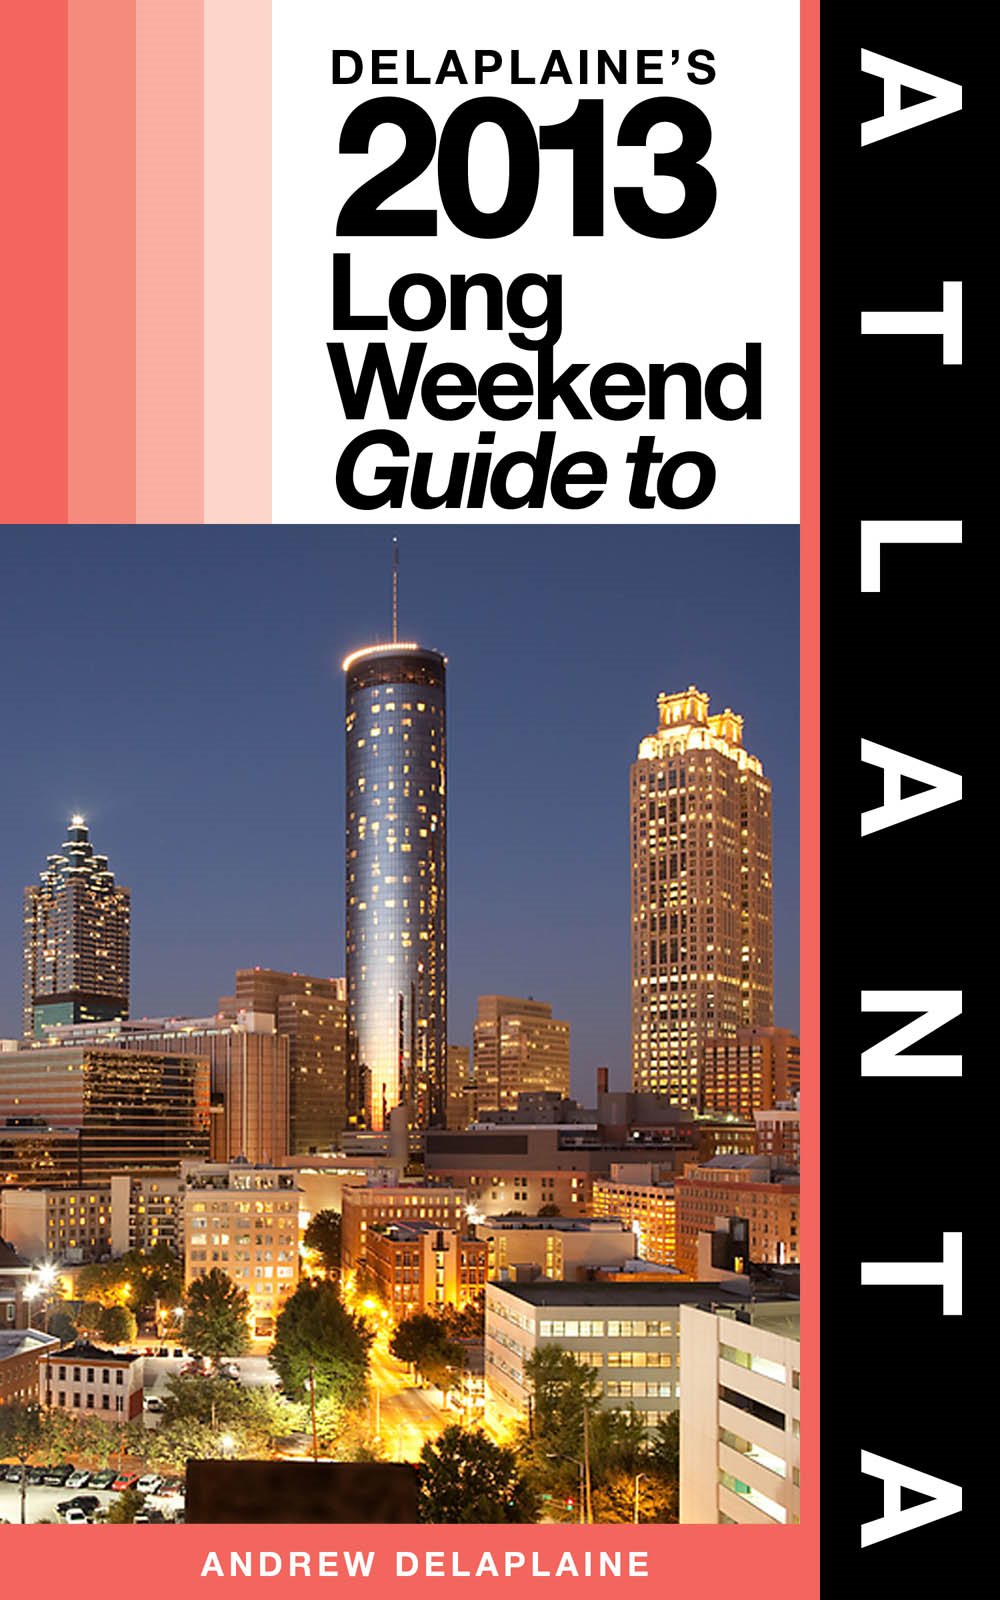 Delaplaine's 2013 Long Weekend Guide to Atlanta